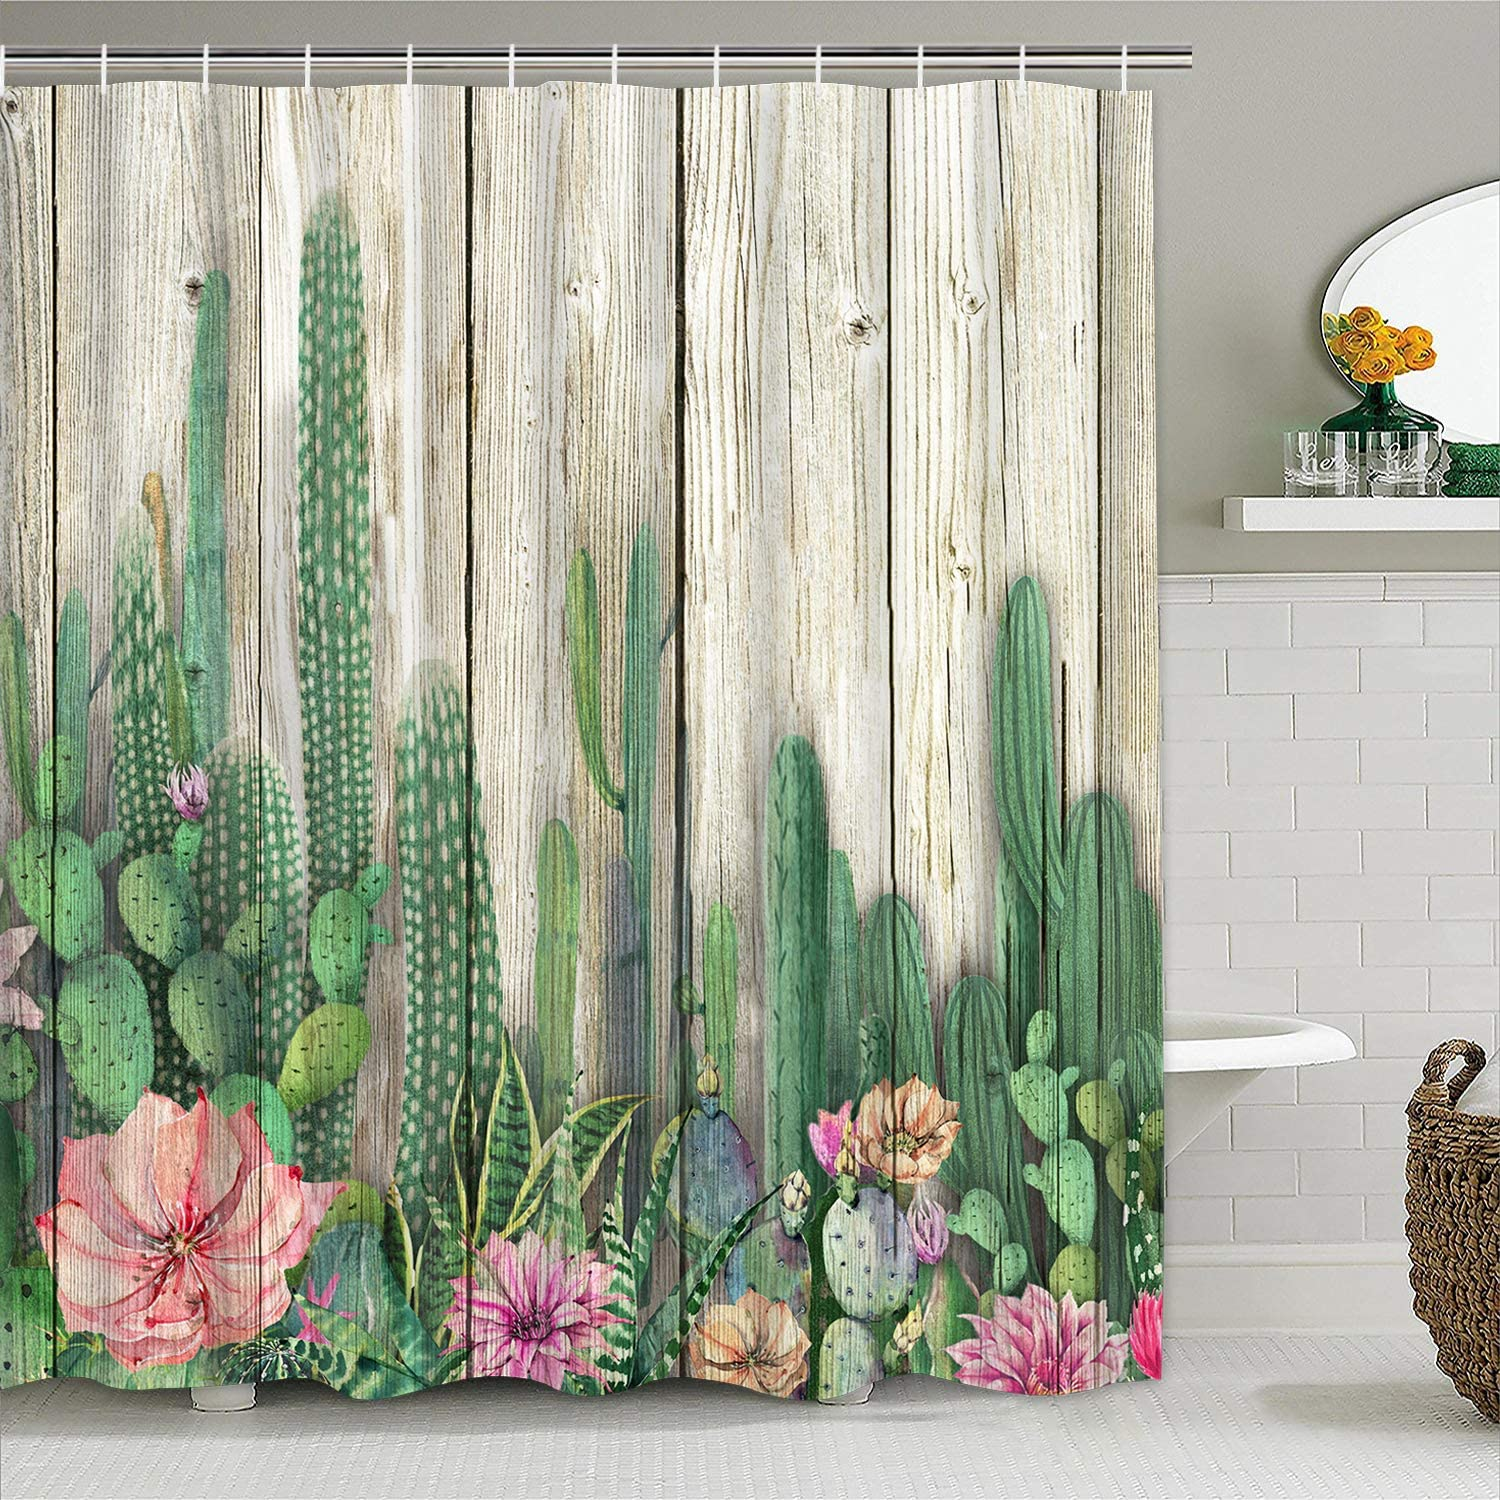 Amazon Com Cactus Shower Curtain Wooden Board Shower Curtain With 12 Hooks Cacti Tropical Succulent Shower Curtain Blossom Plant Flowers Bathroom Shower Curtains Home Kitchen